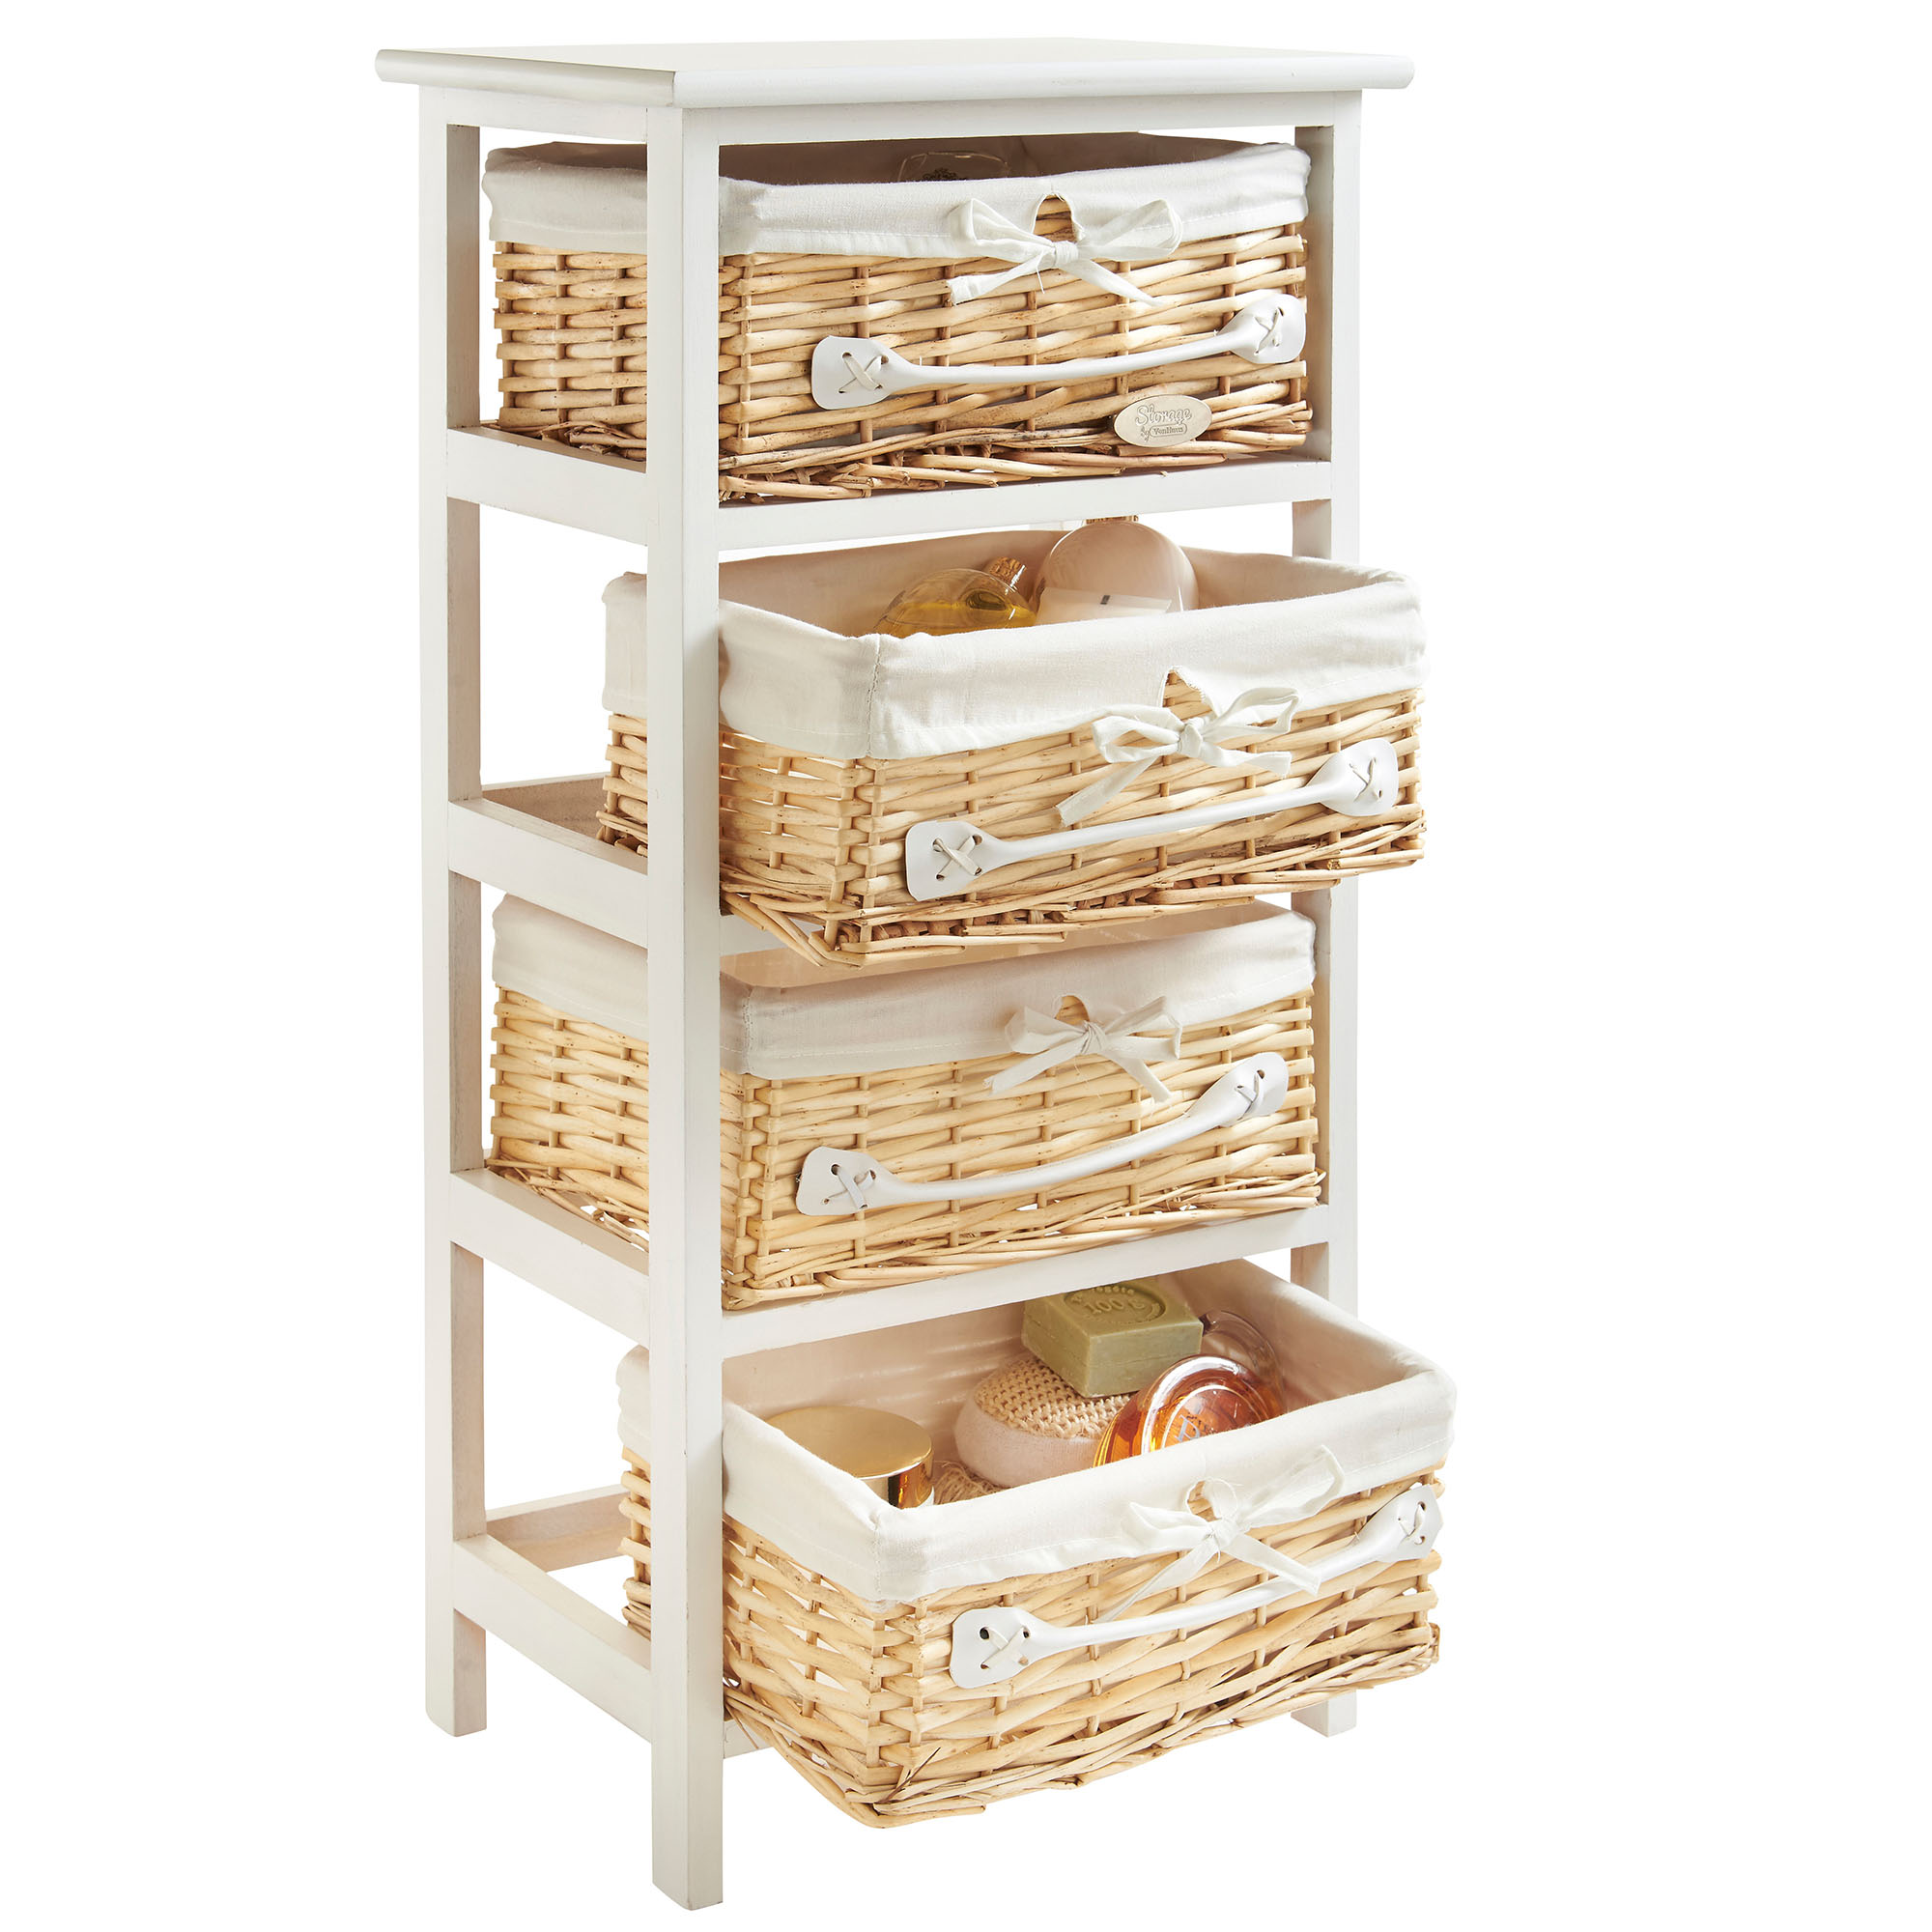 Buy Wicker Storage Basket Kitchen Drawer Style From The: VonHaus 4 Drawer Wicker Basket Wood Storage Unit Bedroom